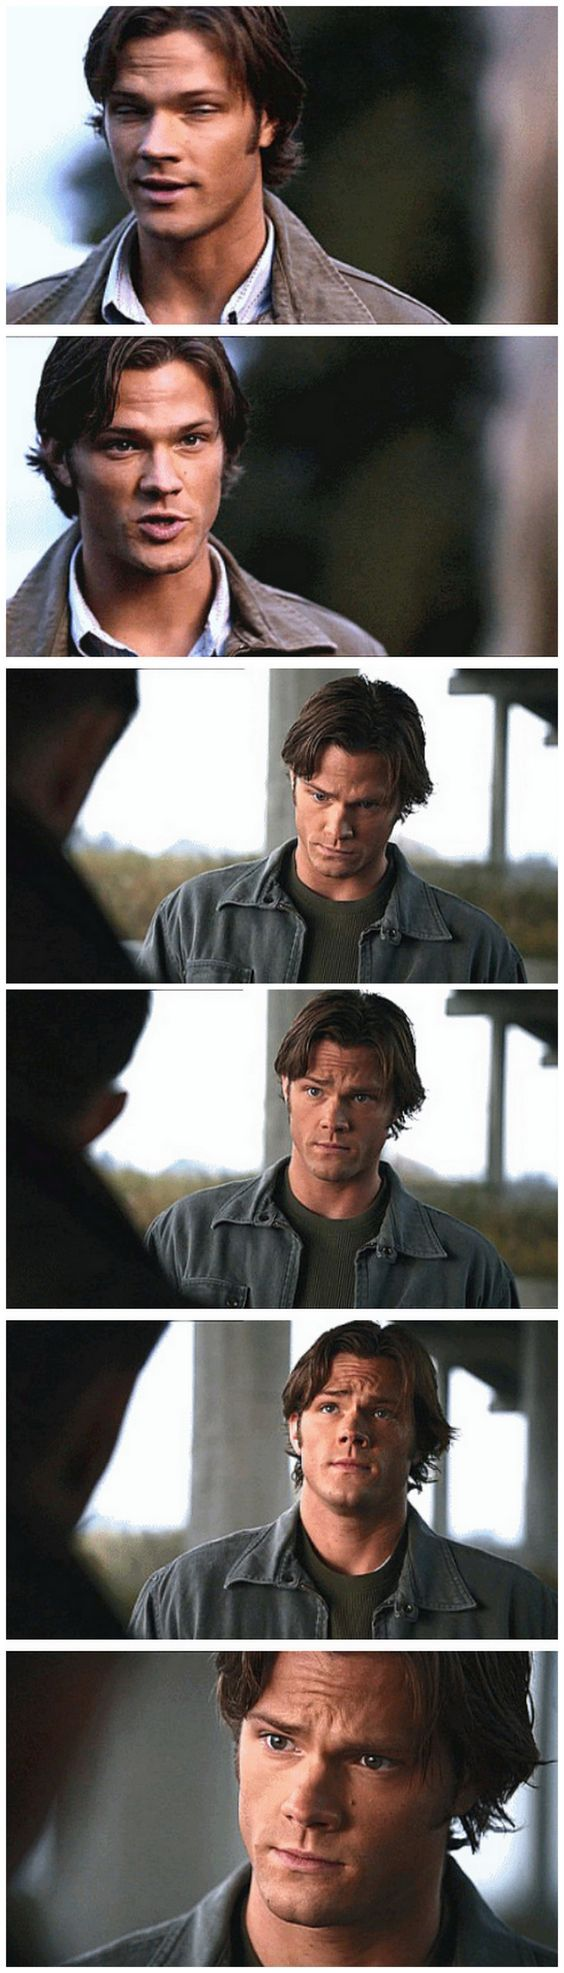 Jared Padalecki as Sam Winchester 4x11